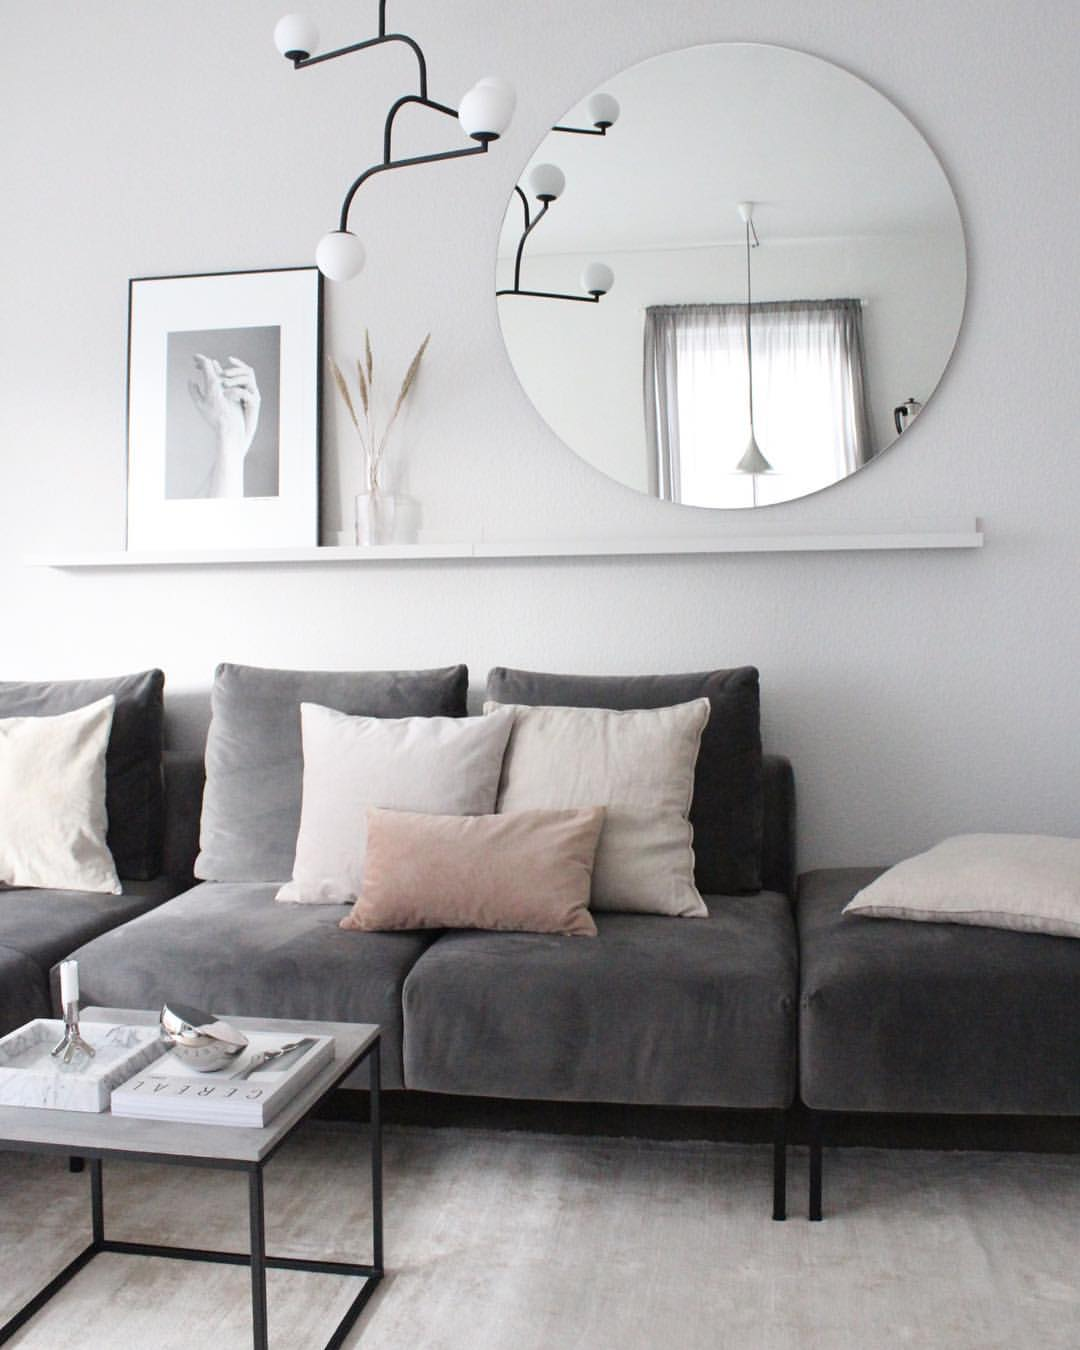 Home Tour: Molge Decor | Kreavilla